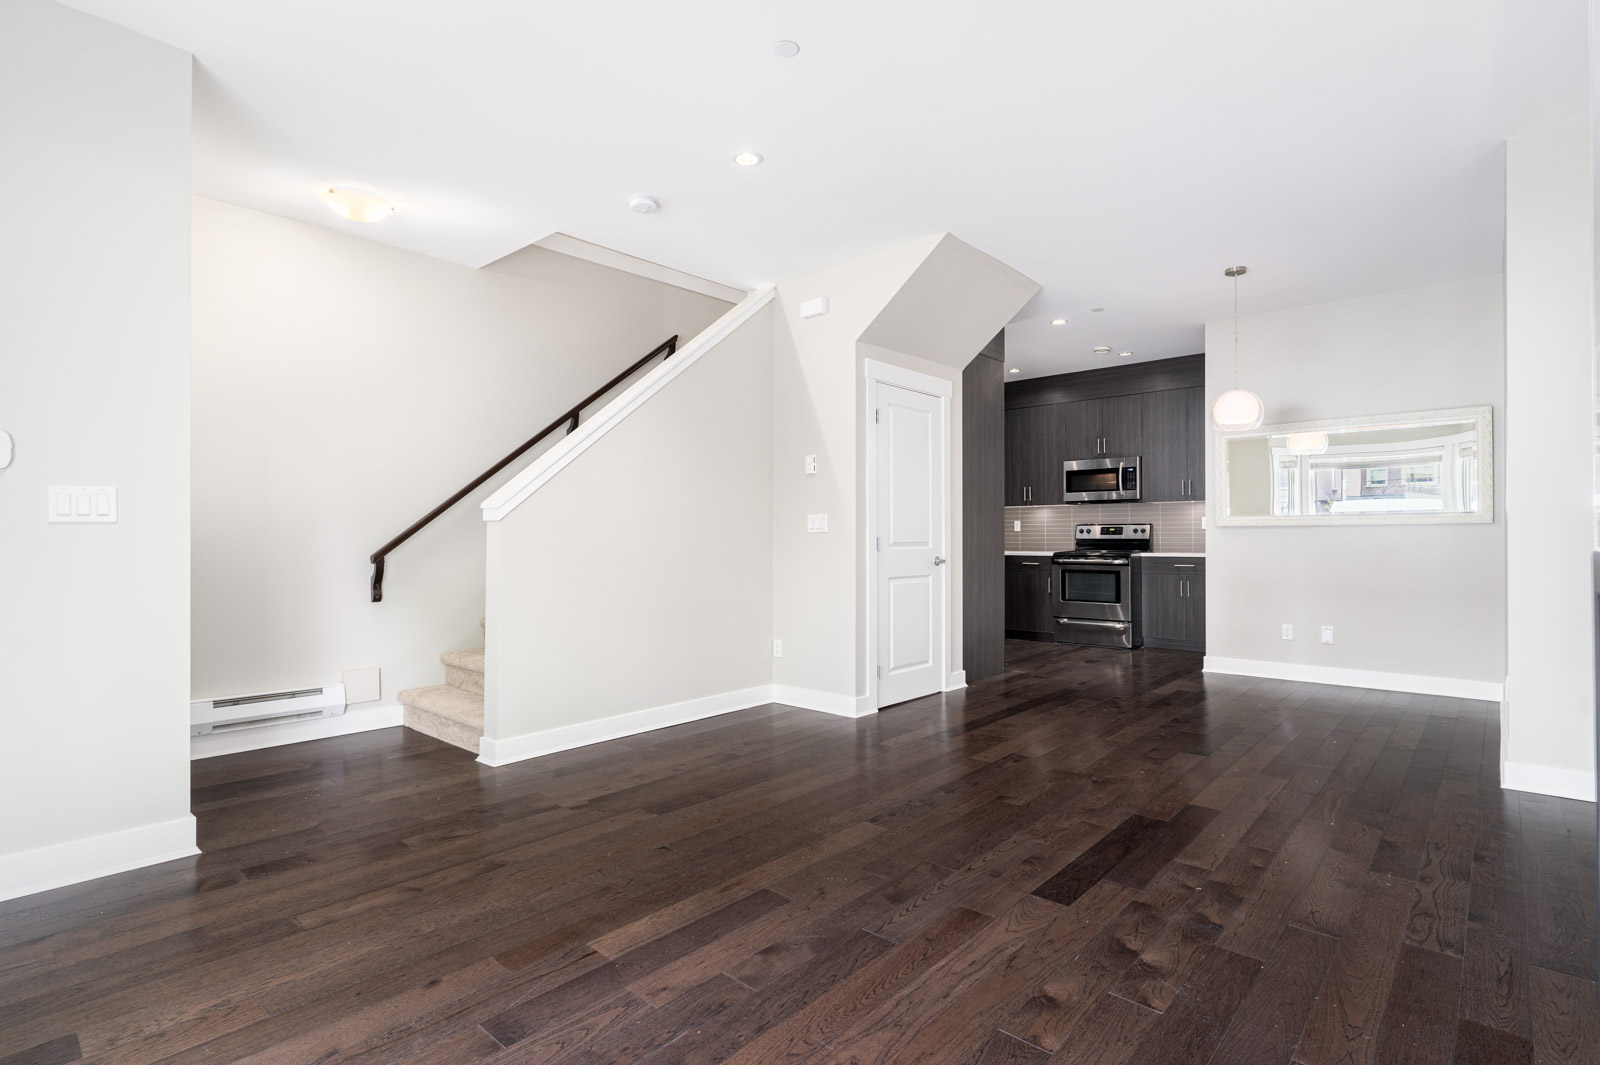 Open living area showing staircase and kitchen entry, with dark hardwood floors